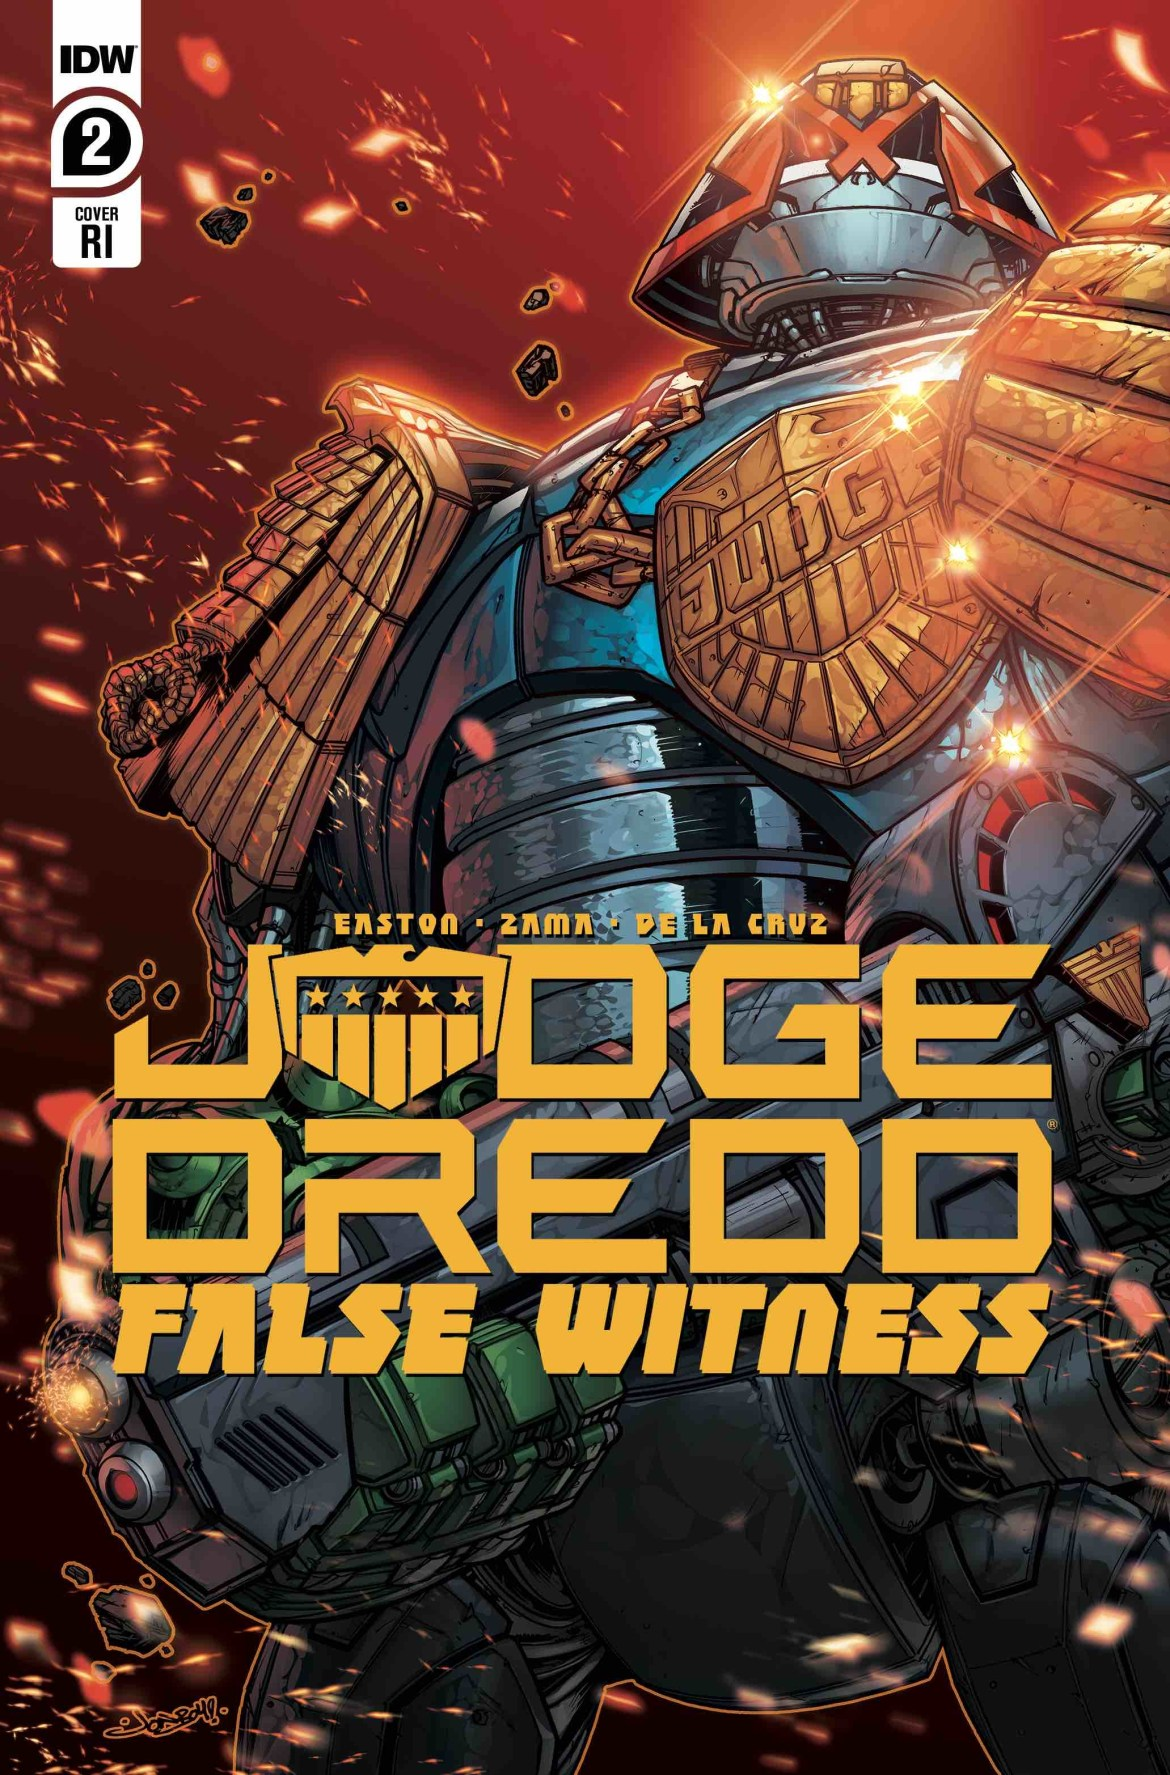 776132_0b43abcbe1824590db478321f18c217bc52685e9 ComicList: IDW Publishing New Releases for 08/12/2020